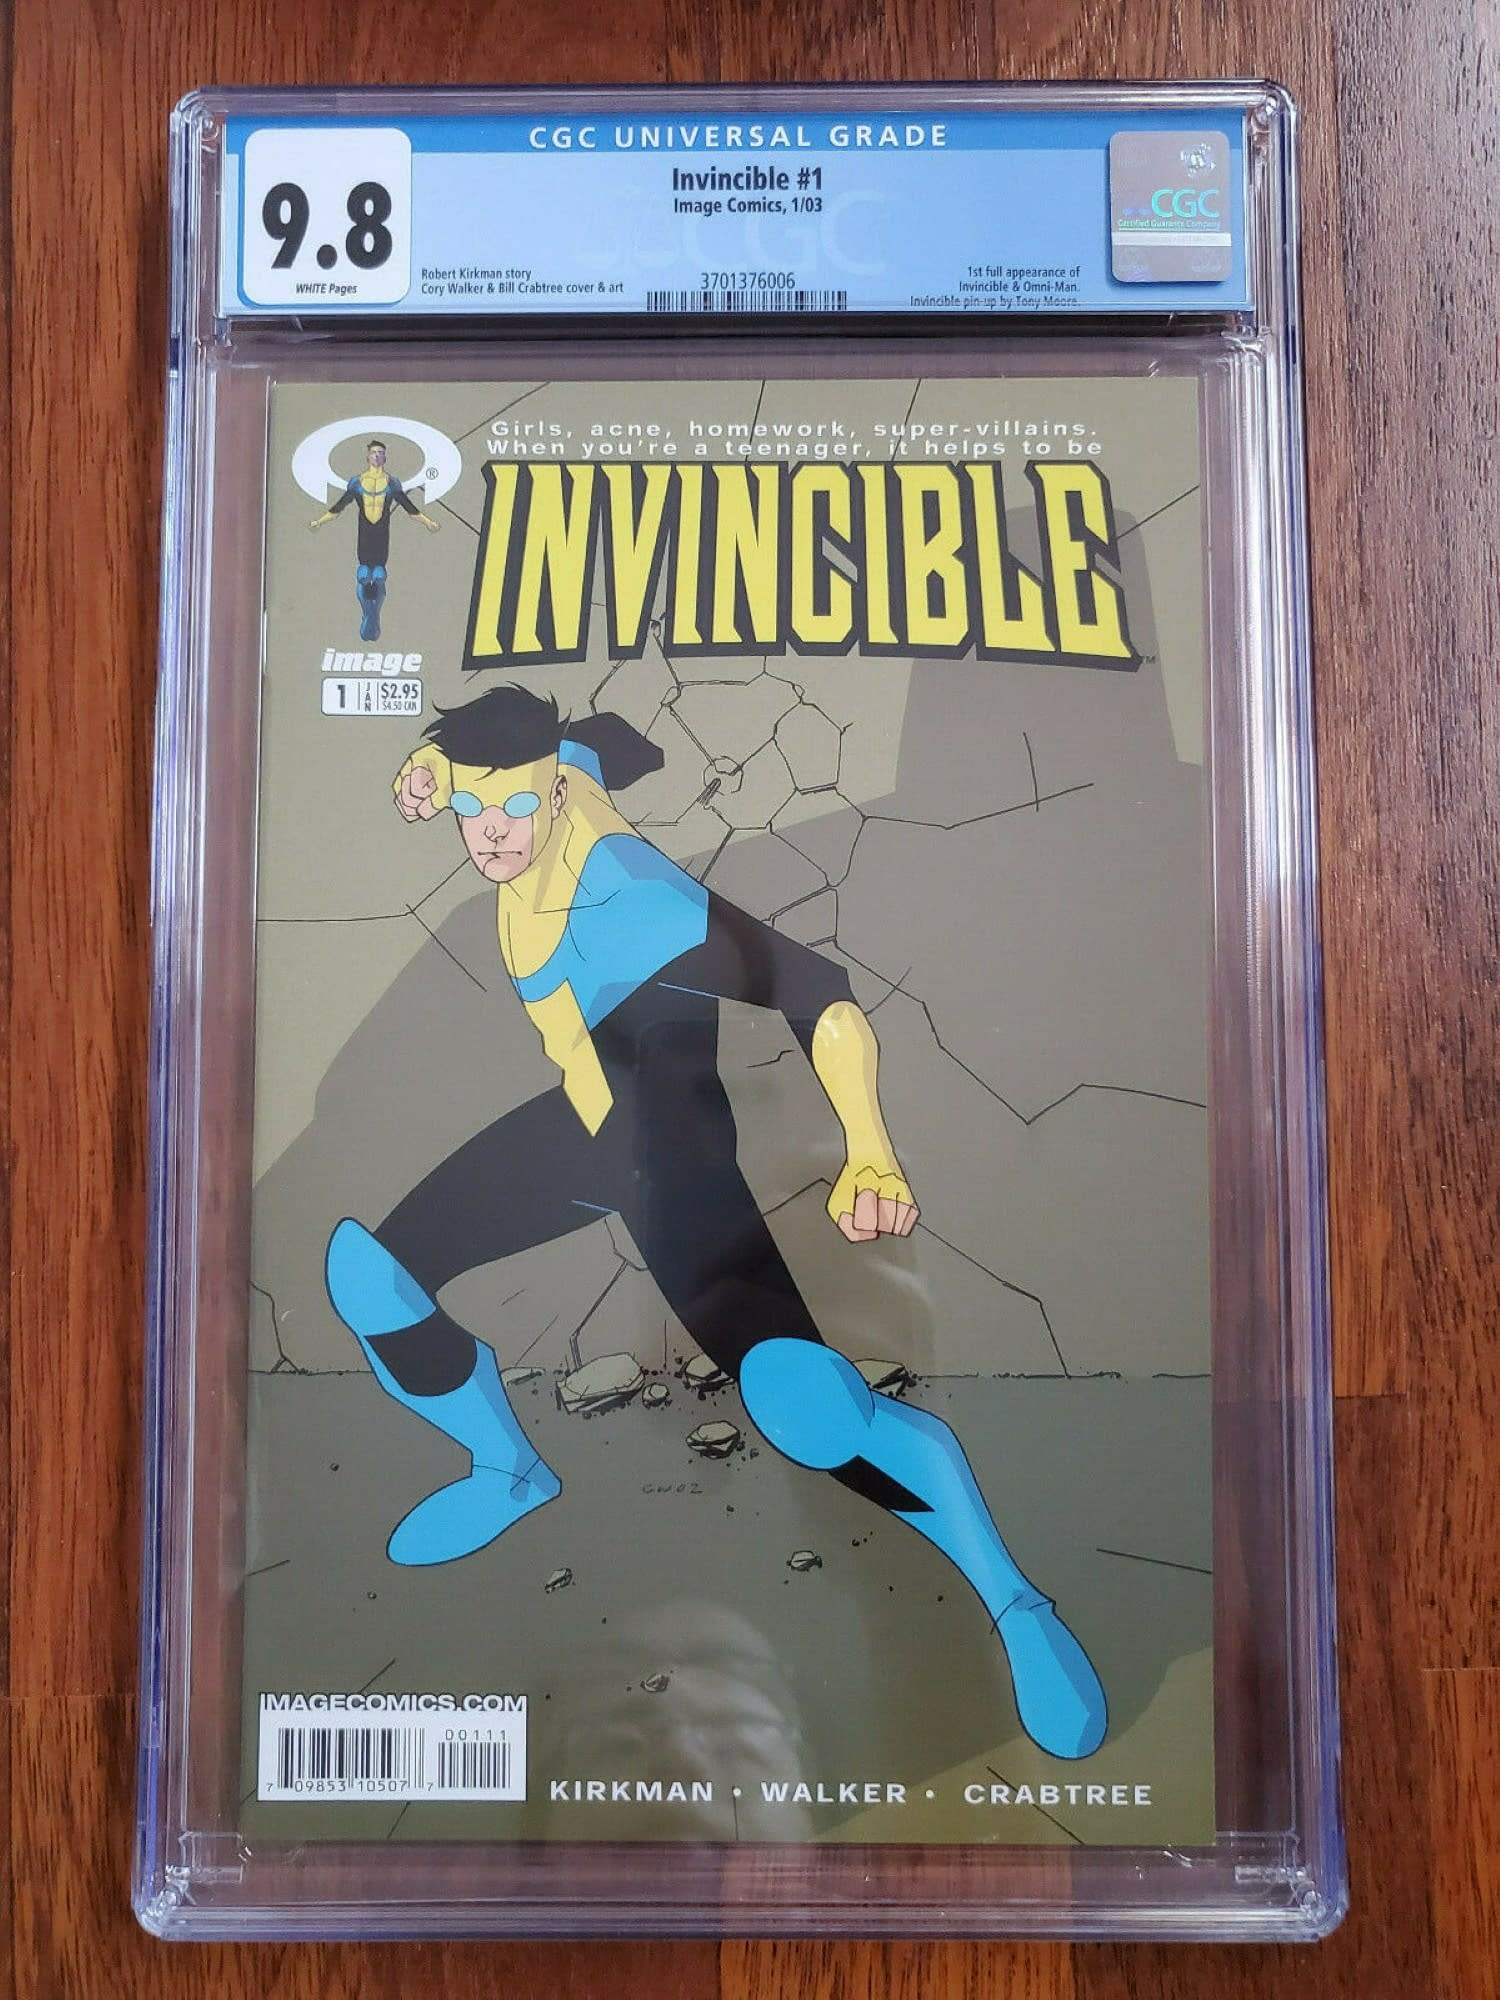 Invincible Has Sold Over 100,000 Graphic Novels in 2021 Already